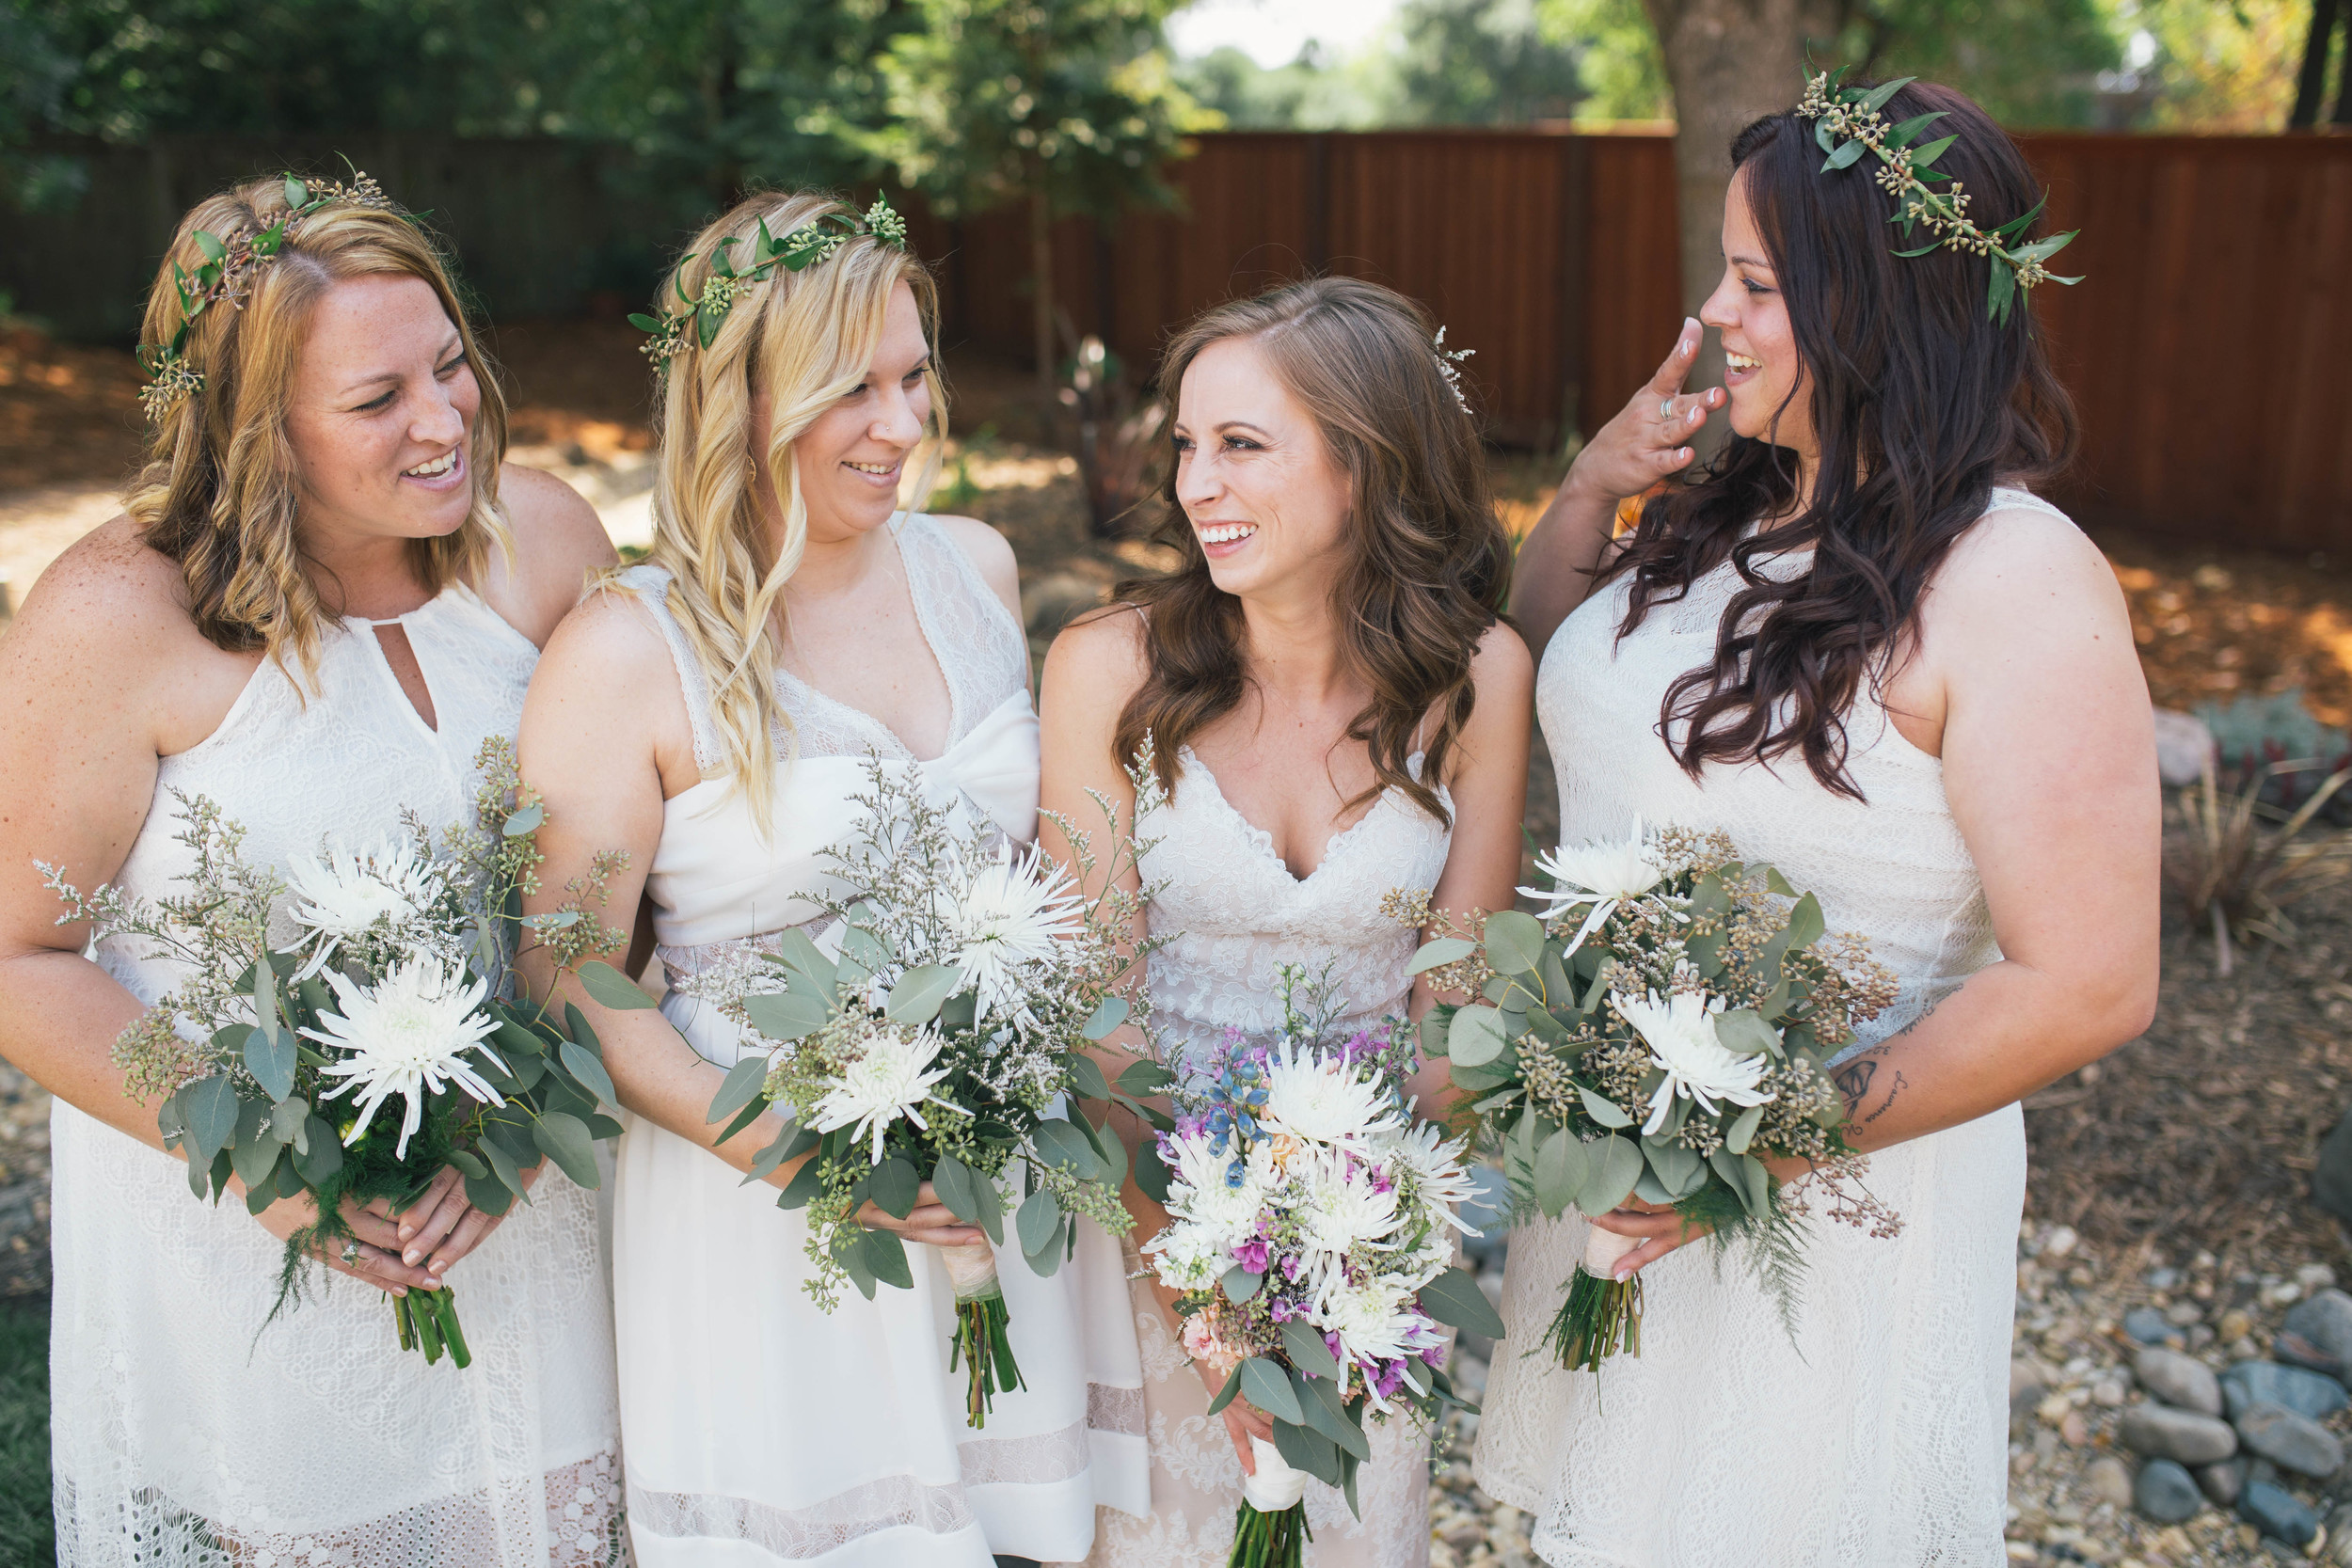 sonoma-county-wedding-photographer-backyard-bridesmaids-bride-flower-crowns